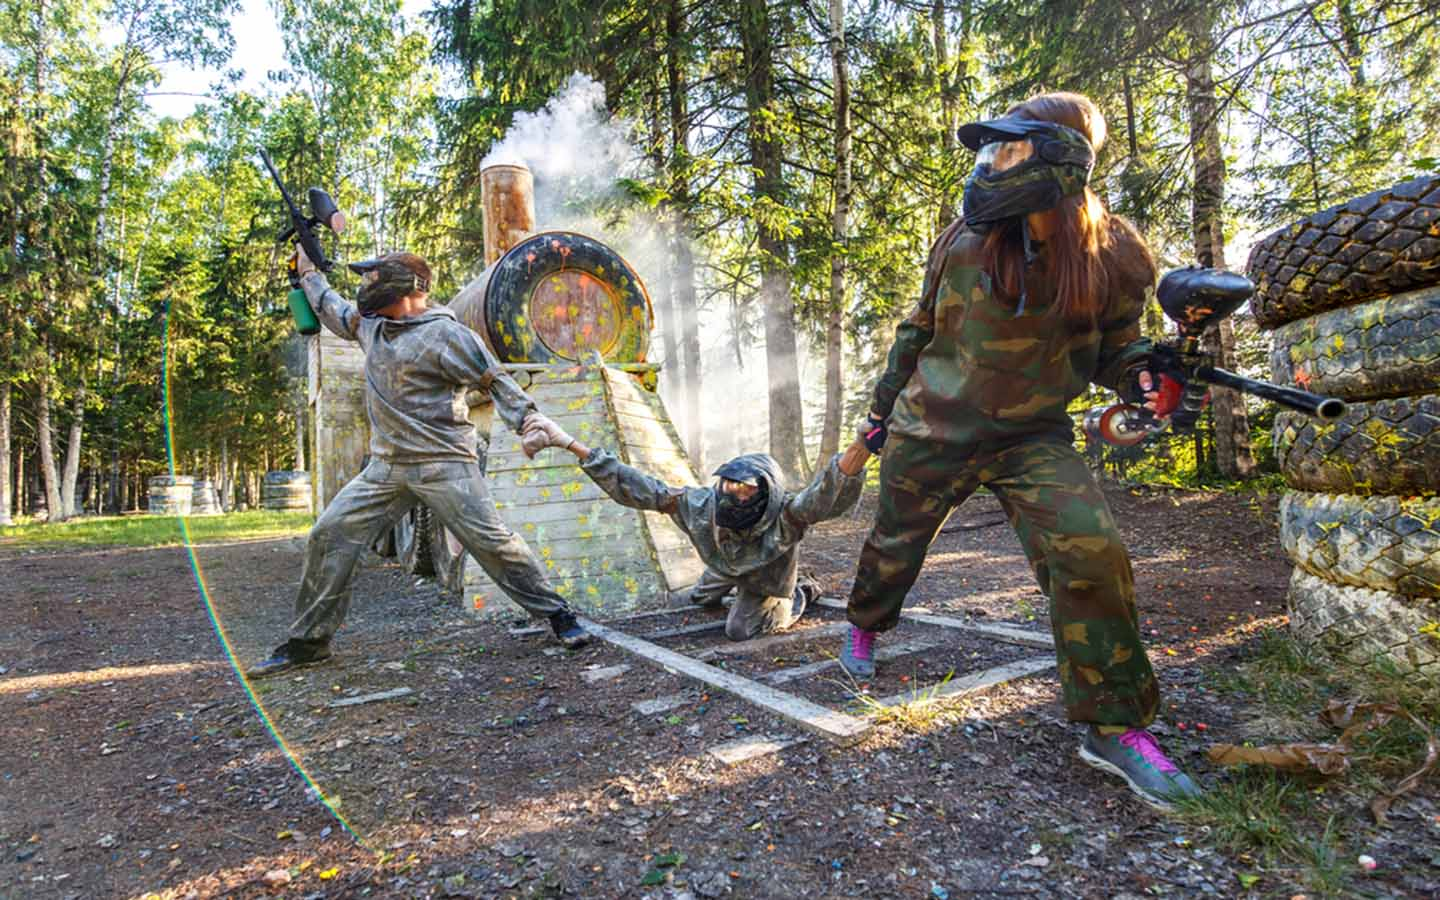 Protecting fellow paintball player